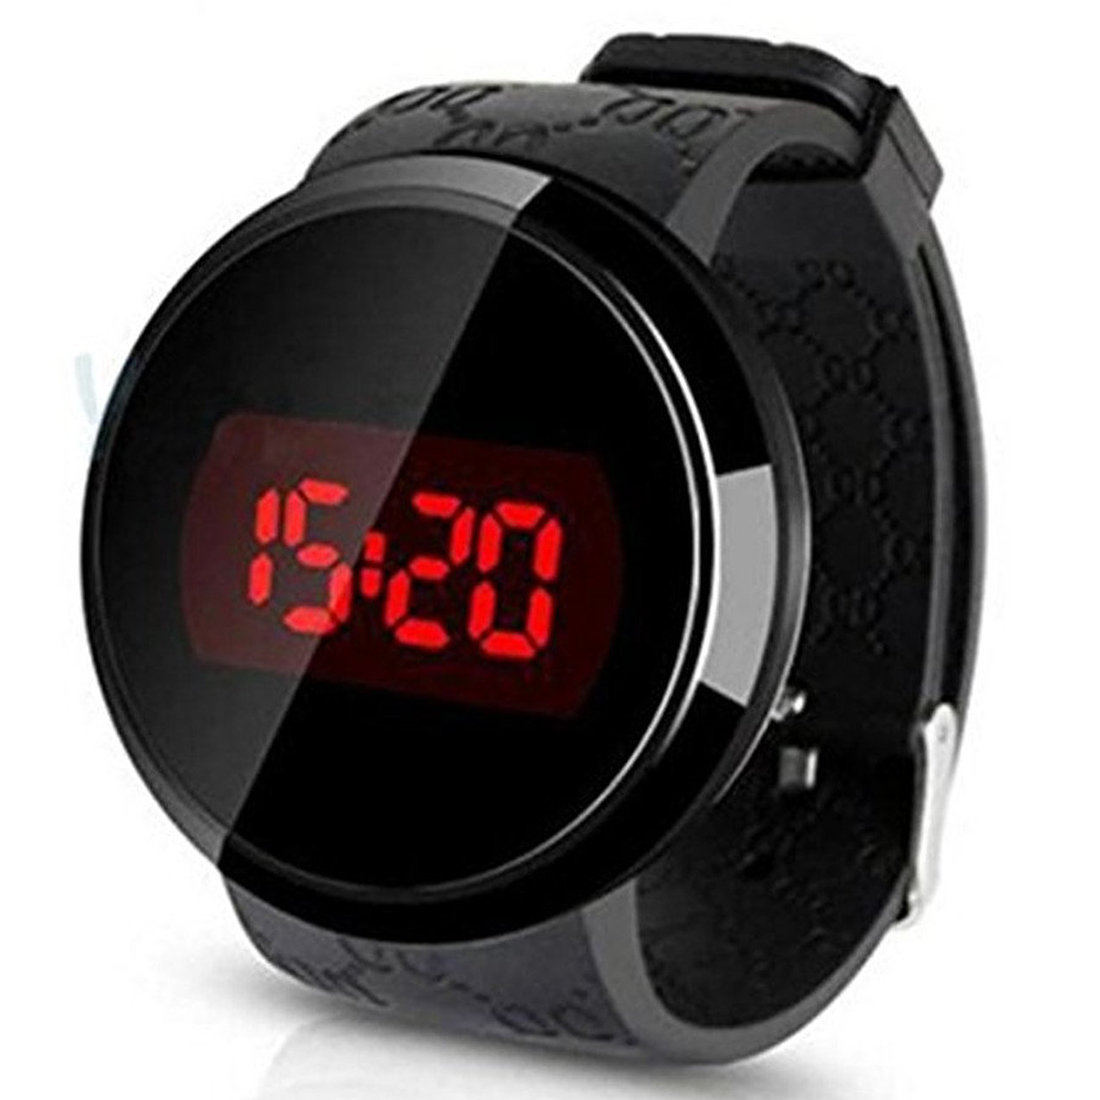 Hot Deal Watch, Sunstone Fashion Men LED Touch Screen Date Day Silicone Bracelet Watch Digital LED Touch Watch Black image